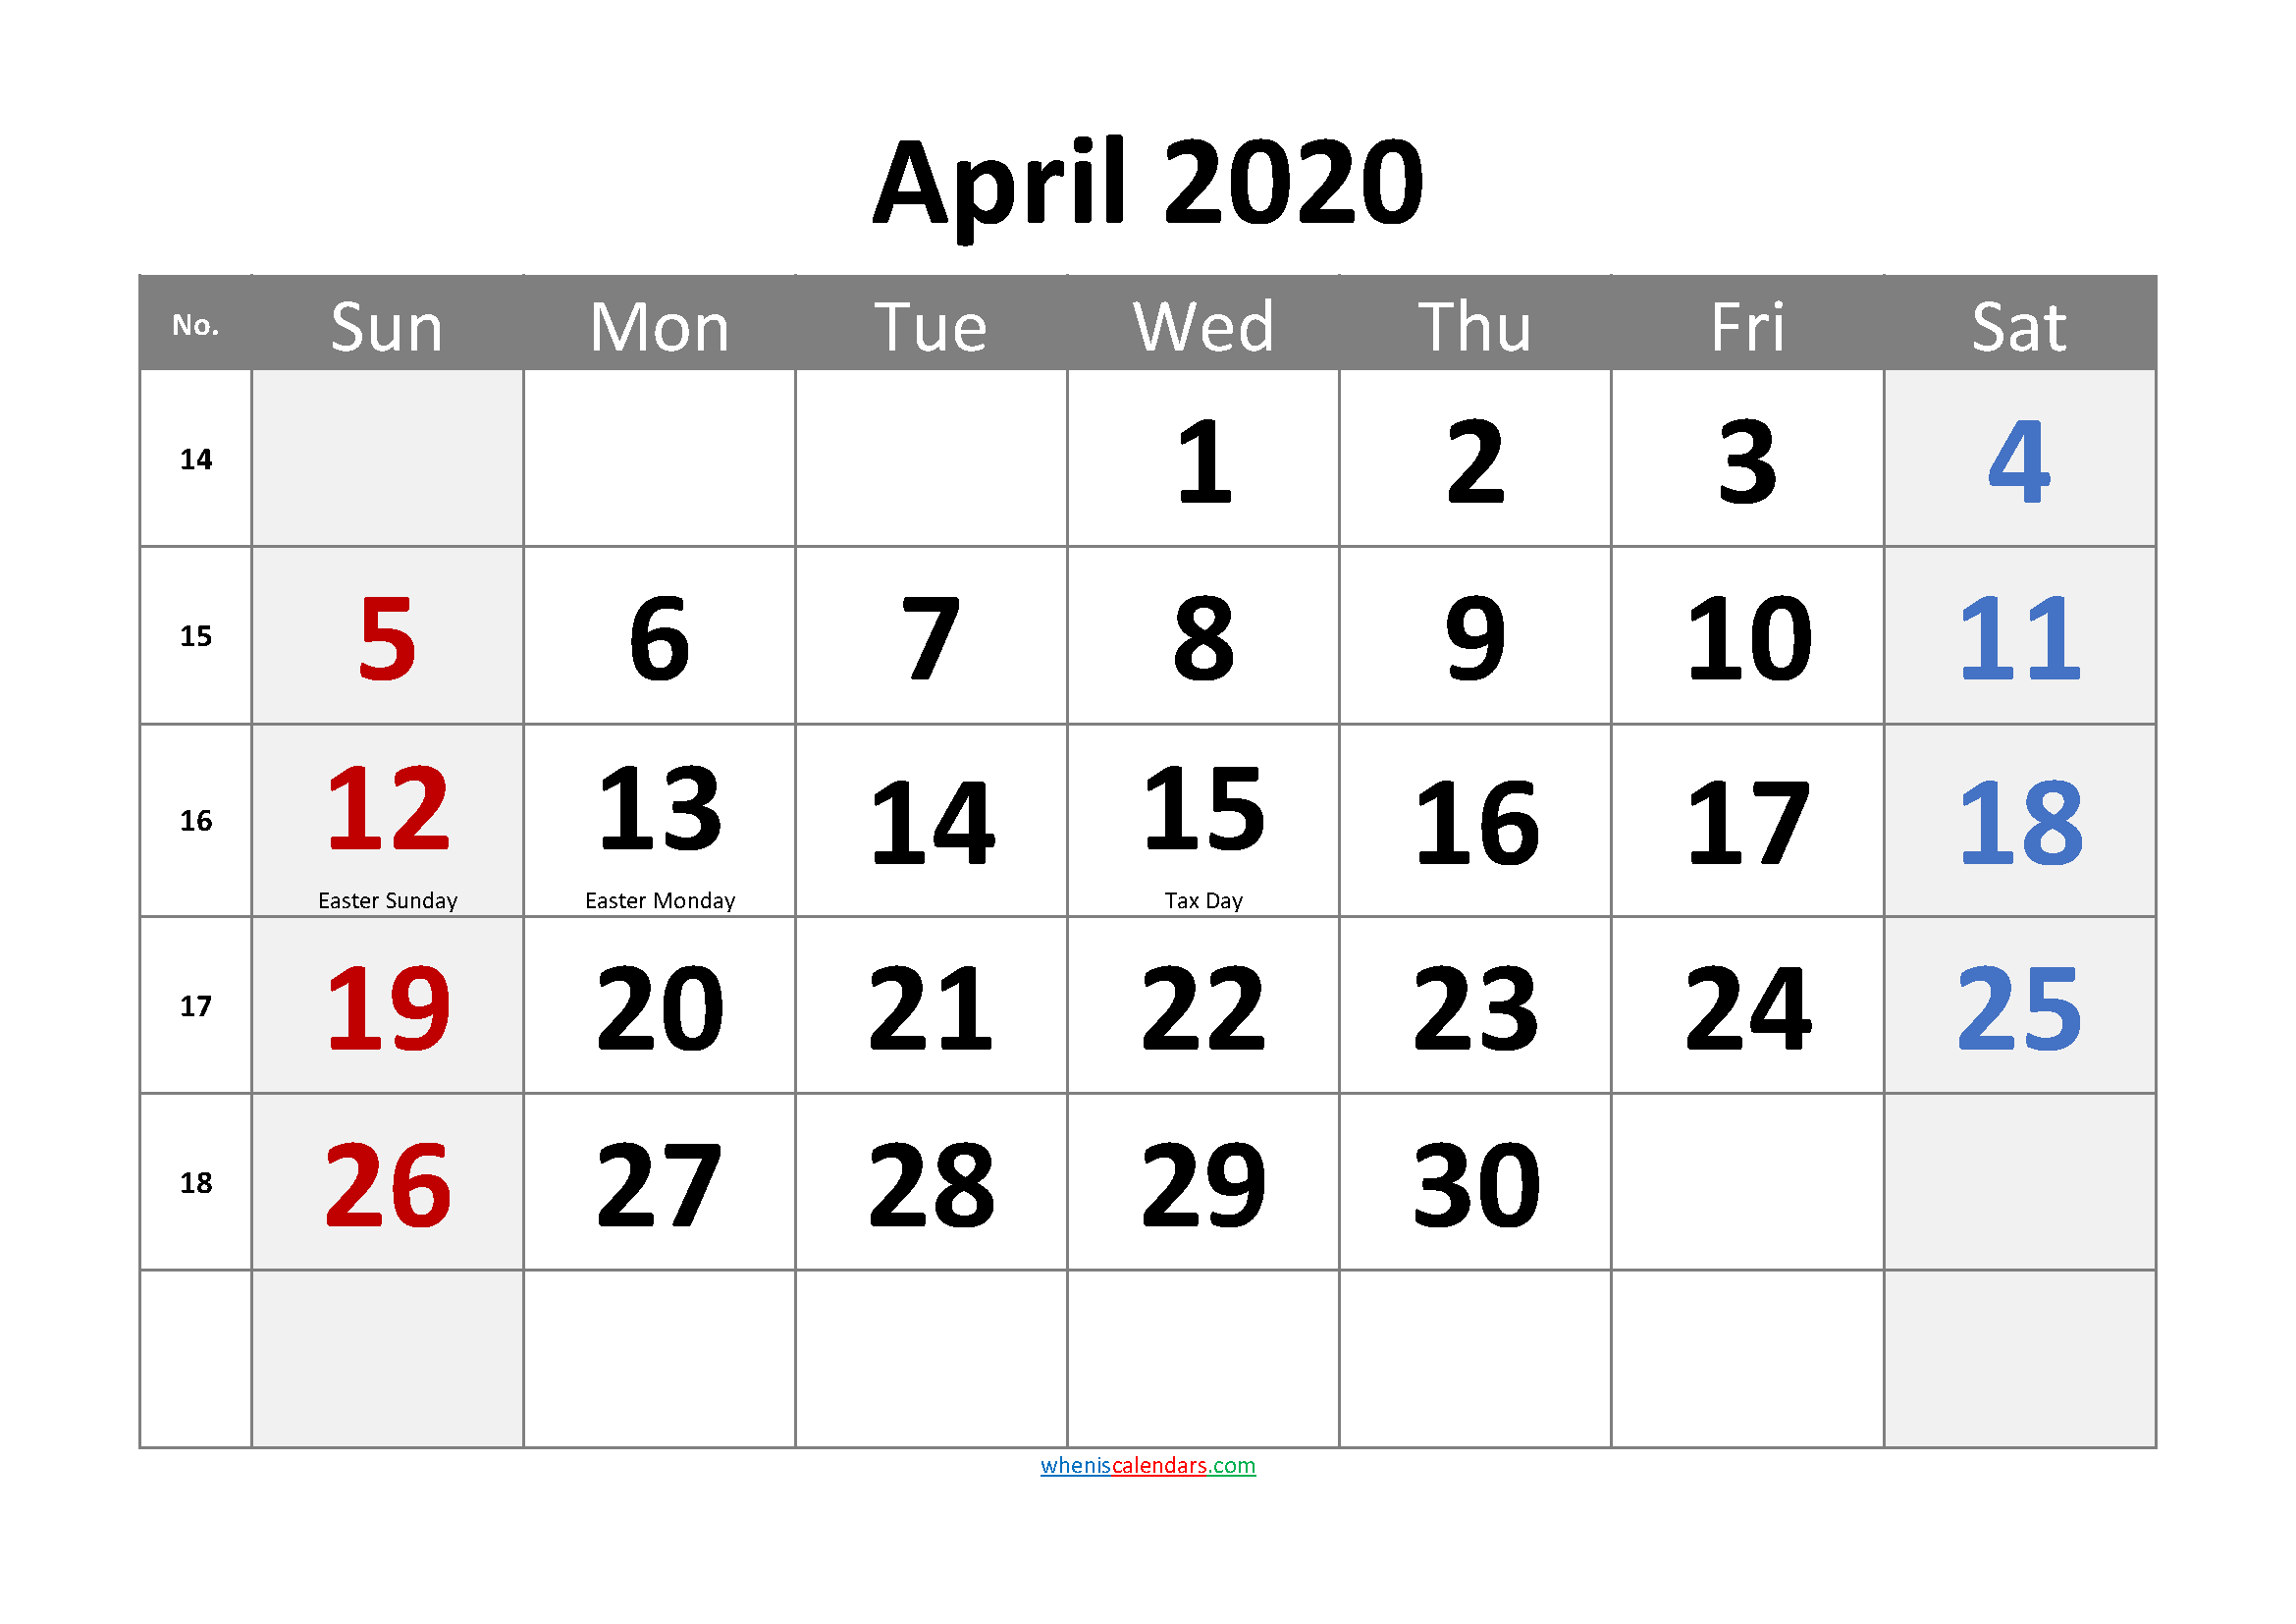 April 2020 Printable Calendar with Holidays